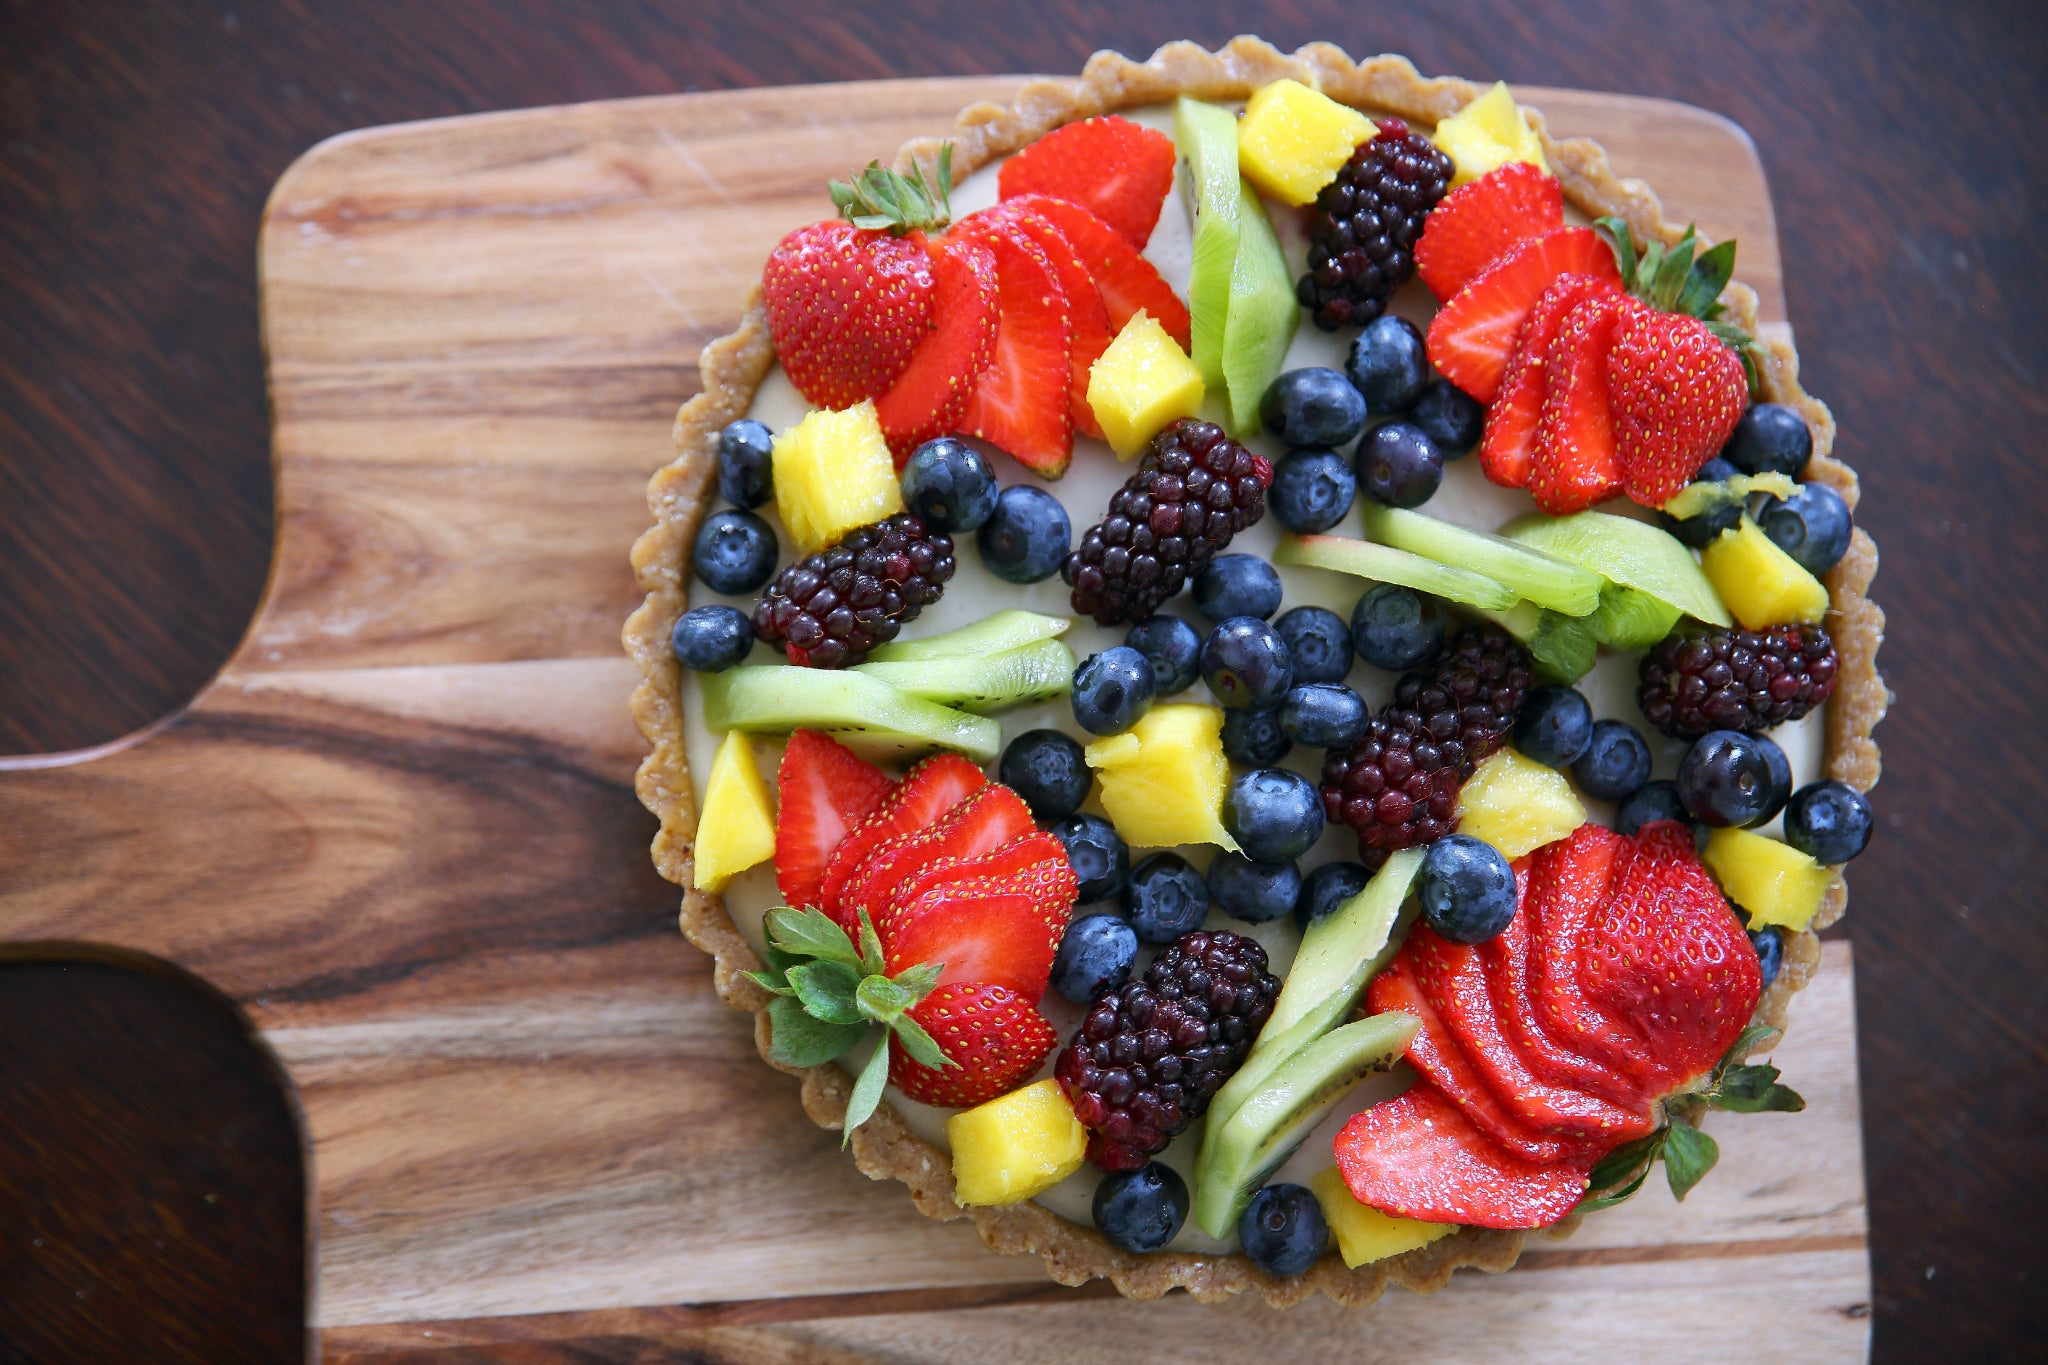 20 MINUTE SUMMER FRUIT TART #healthy #vegan #fruit #tart #recipe #dairyfree #sugarfree #glutenfree #raw #begoodorganics